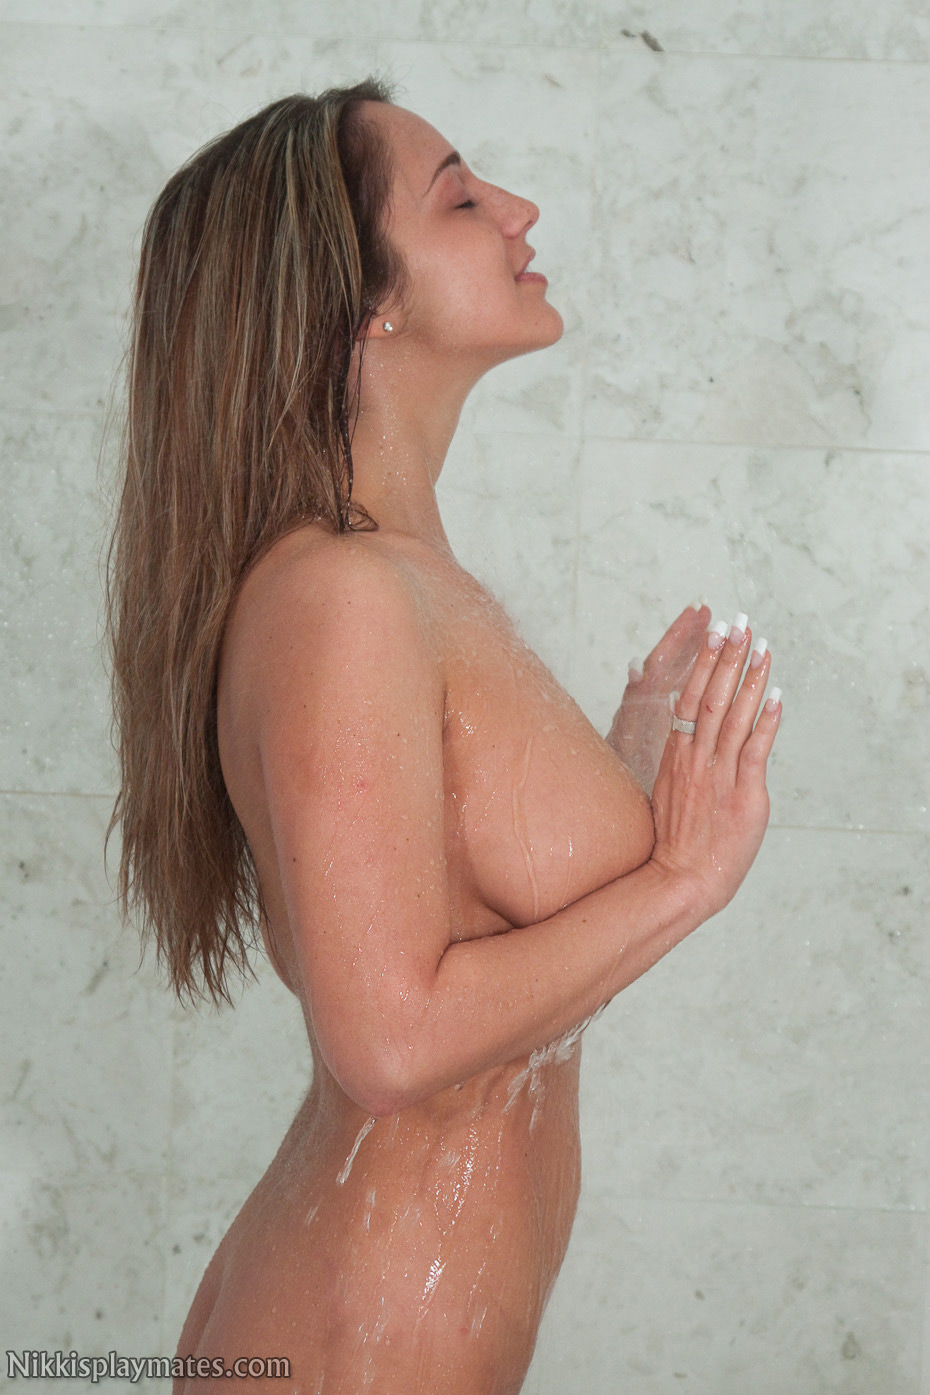 See sims whoo naked exposed image